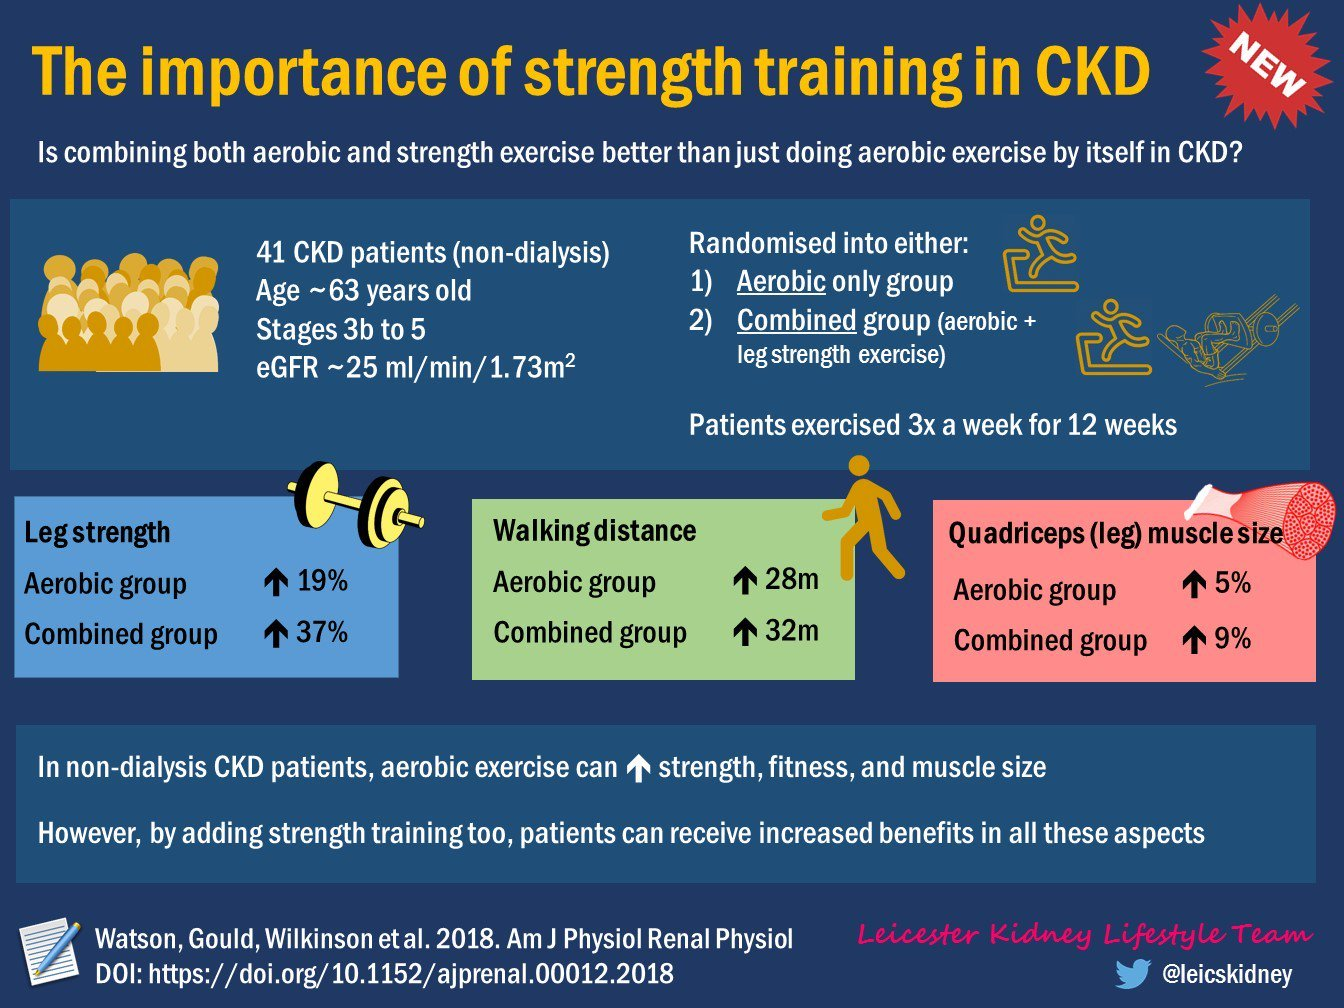 Weightlifting shows benefits for kidney disease patients